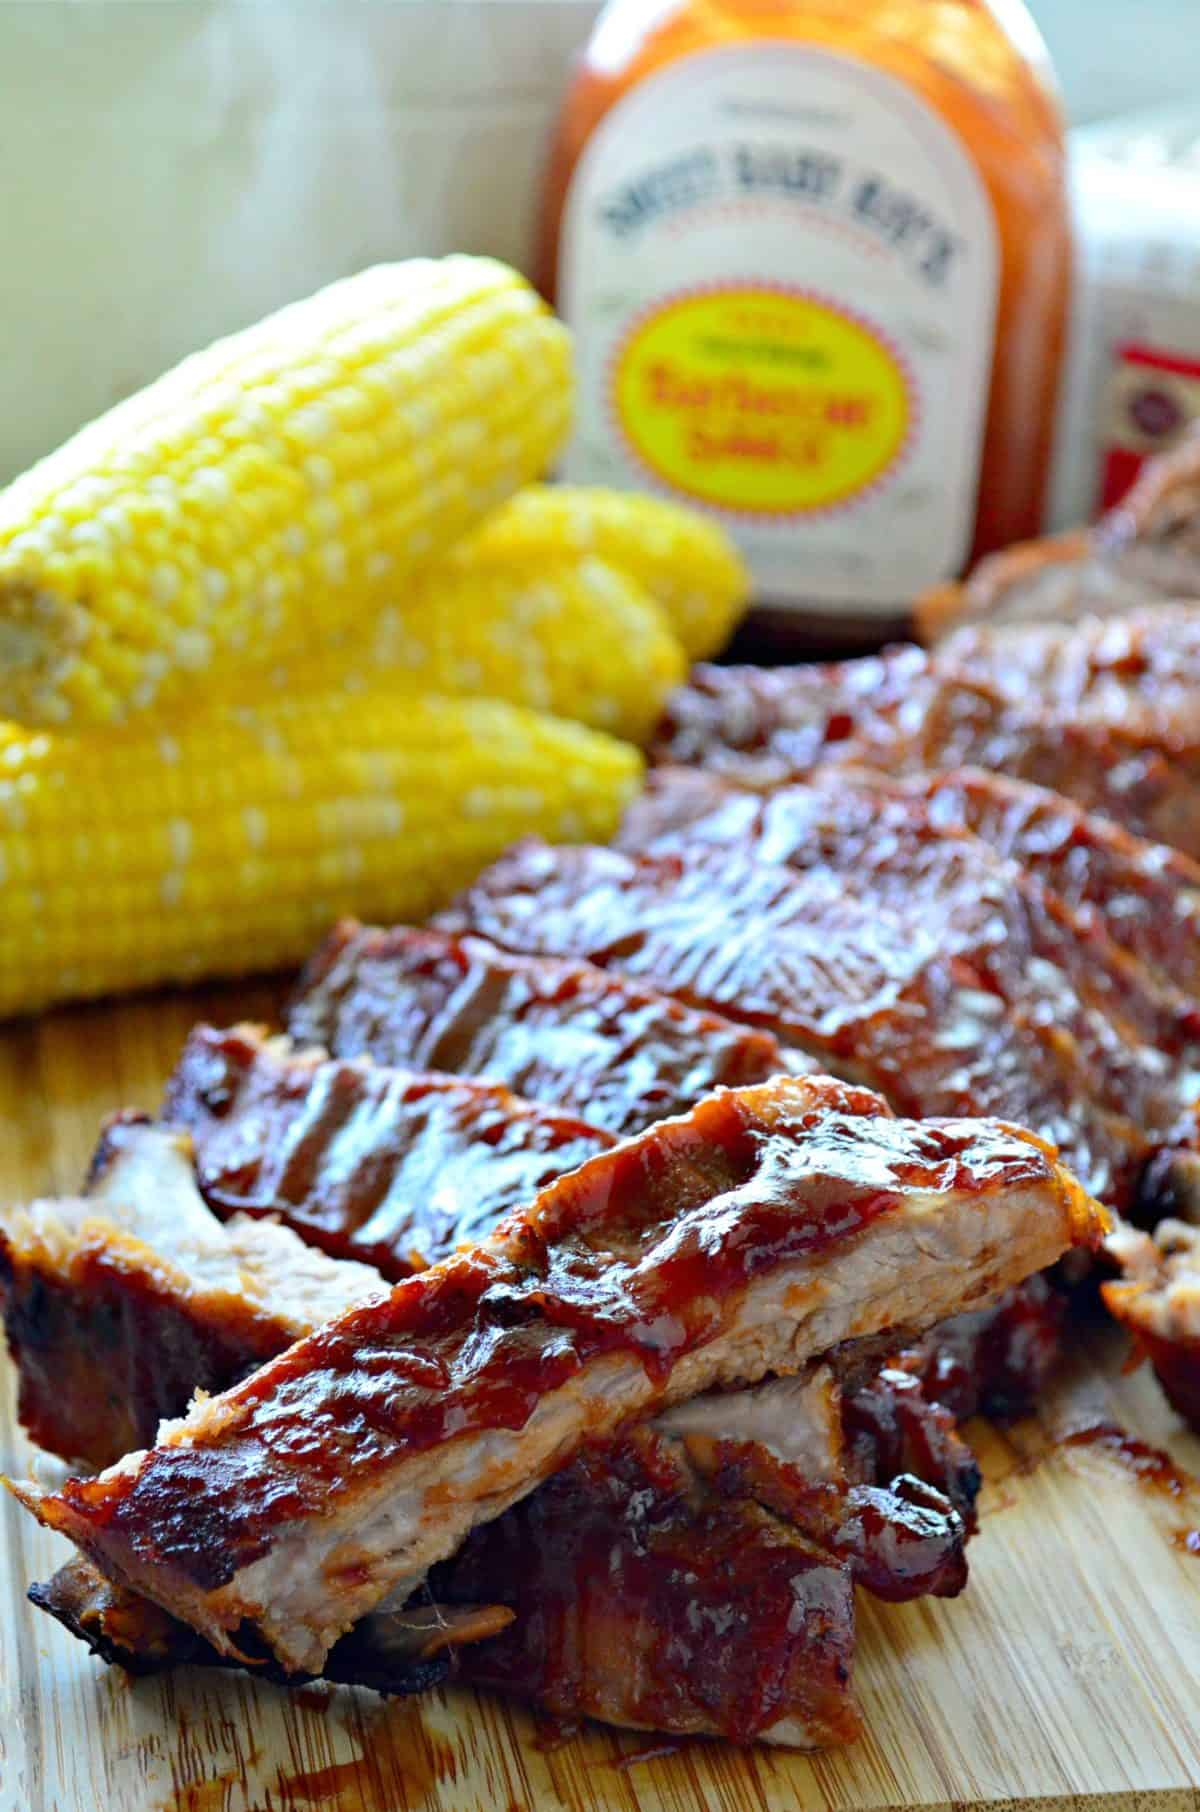 closeup baby back ribs smothered in red sauce and stacked on cutting board in front of fresh corn and BBQ sauce.